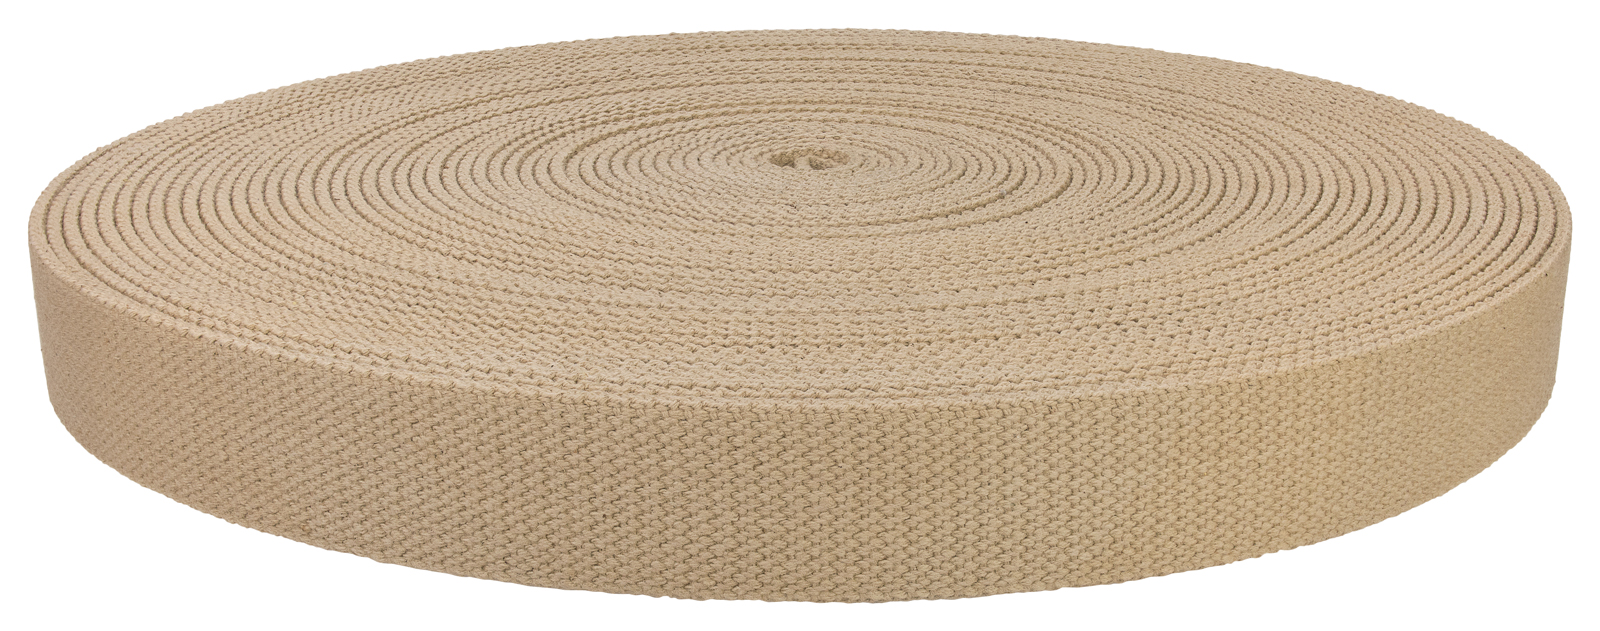 1 Inch Coyote Brown Medium Weight Nylon Webbing Closeout 20 Yards